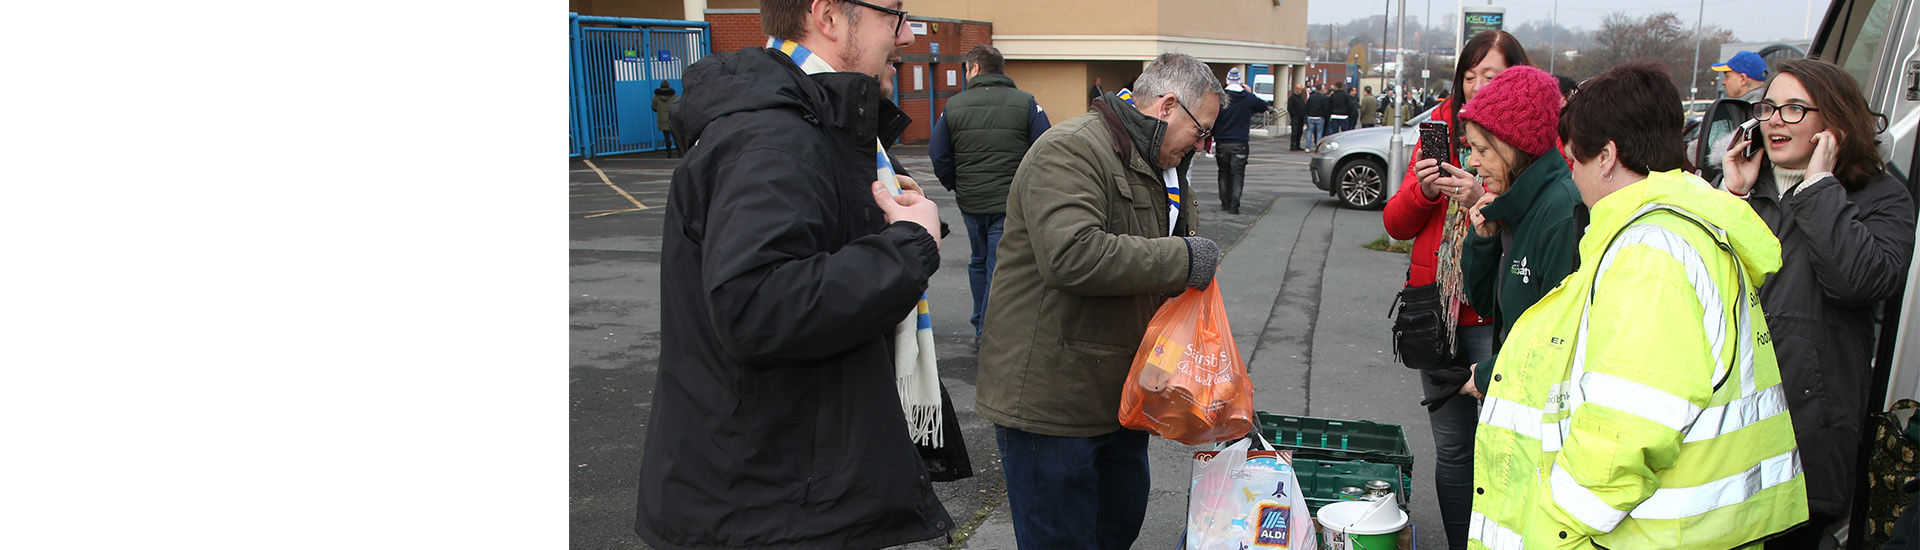 Foodbank Back In Action For 201920 Campaign Leeds United